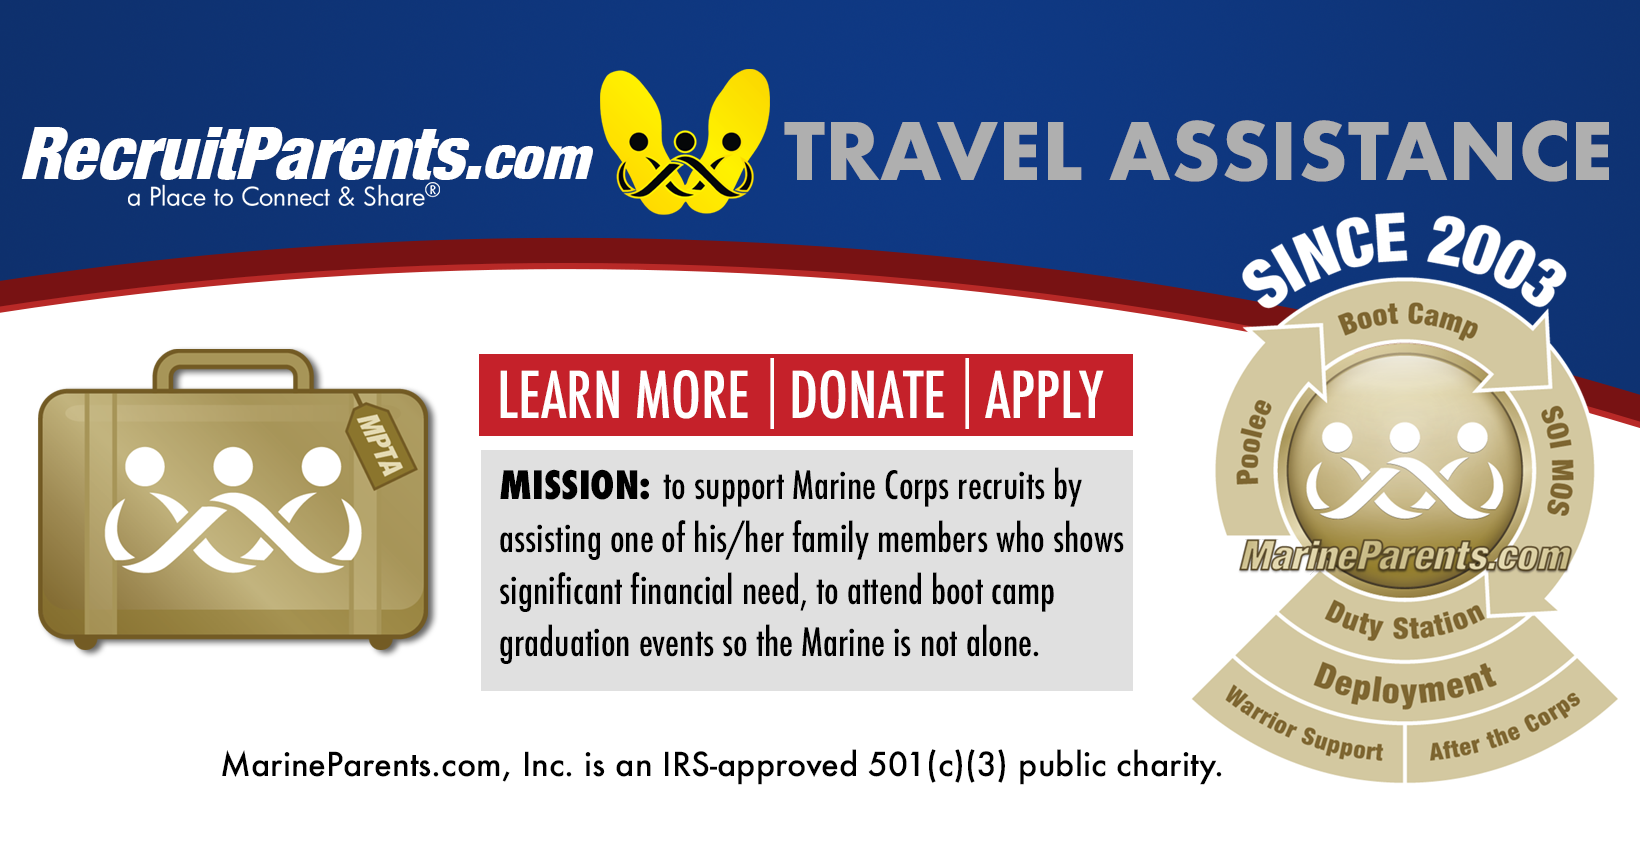 MarineParents.com Travel Assistance